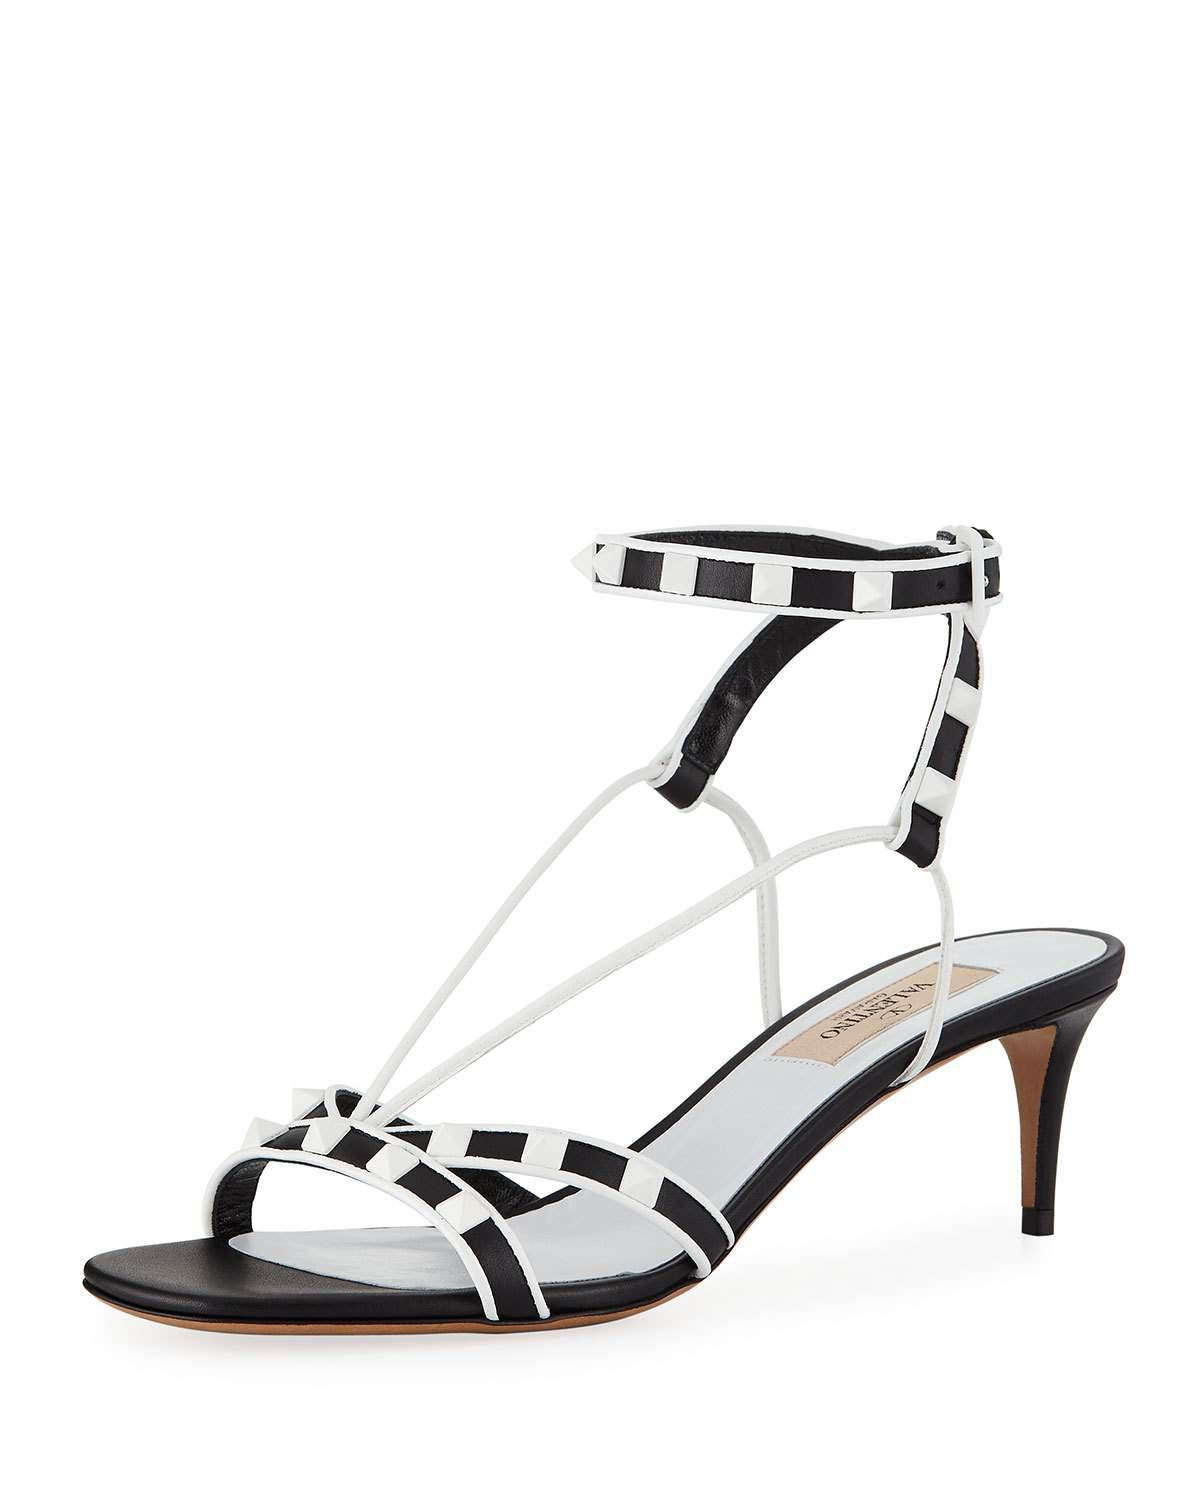 Free Rockstud heel sandals Valentino Outlet For Nice Cost For Sale Sale Cheapest Amazing Price Online zp48PQT5k